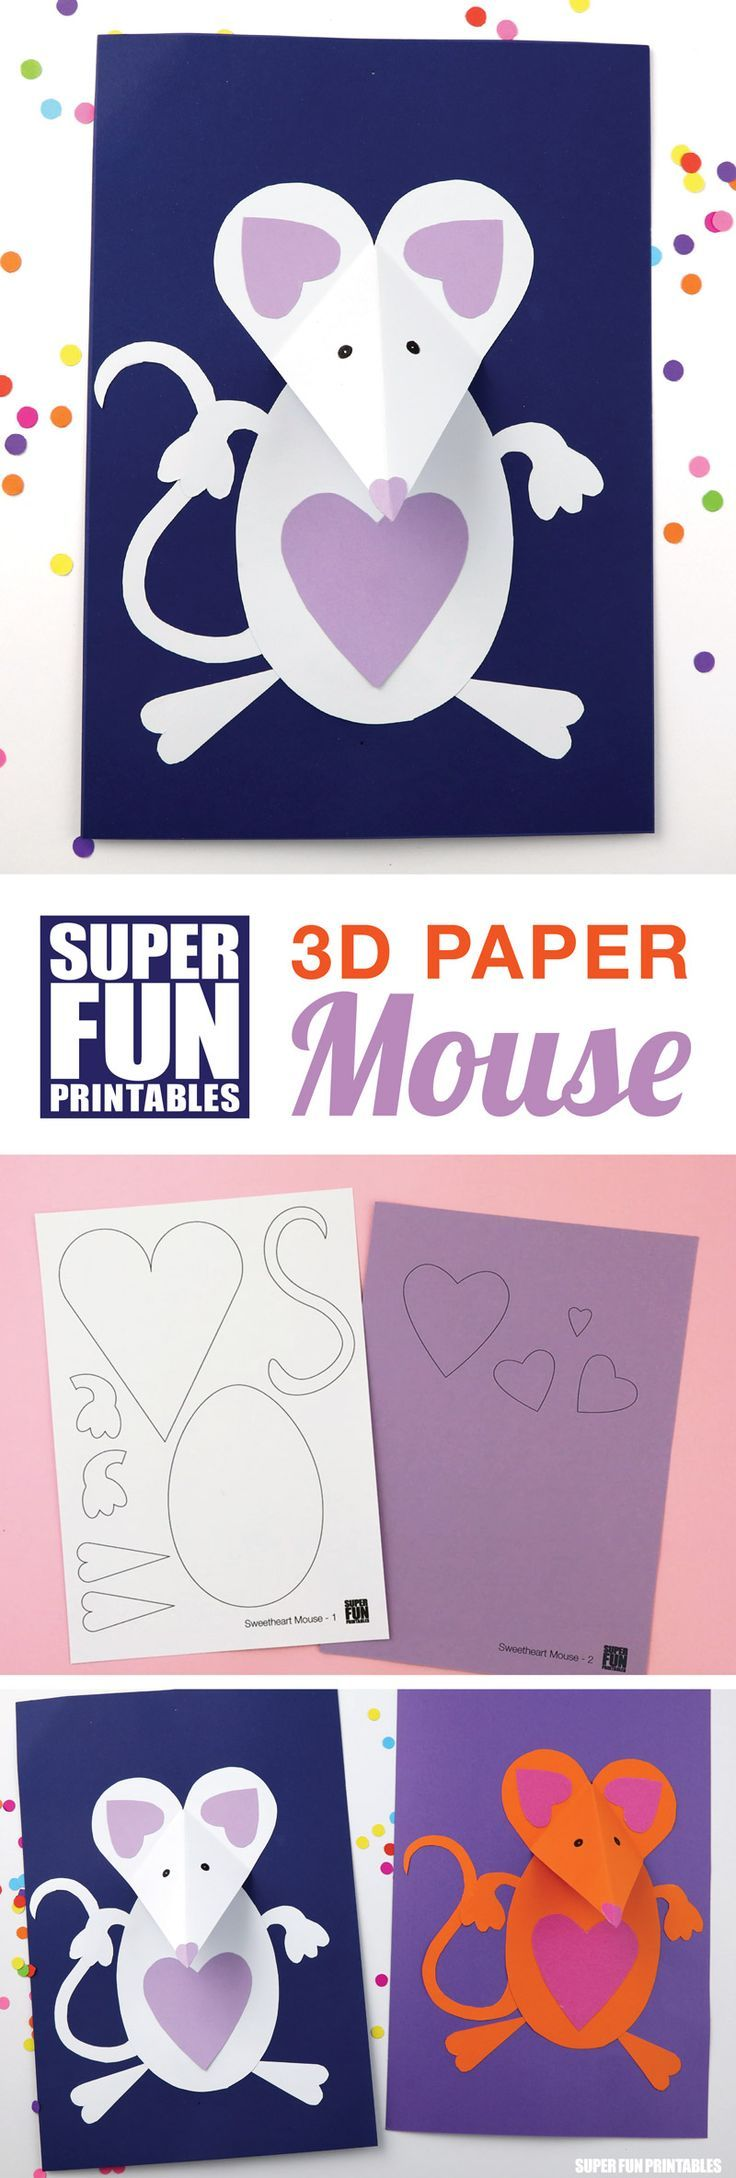 3D Paper Mouse Valentines Day craft for kids with printable template